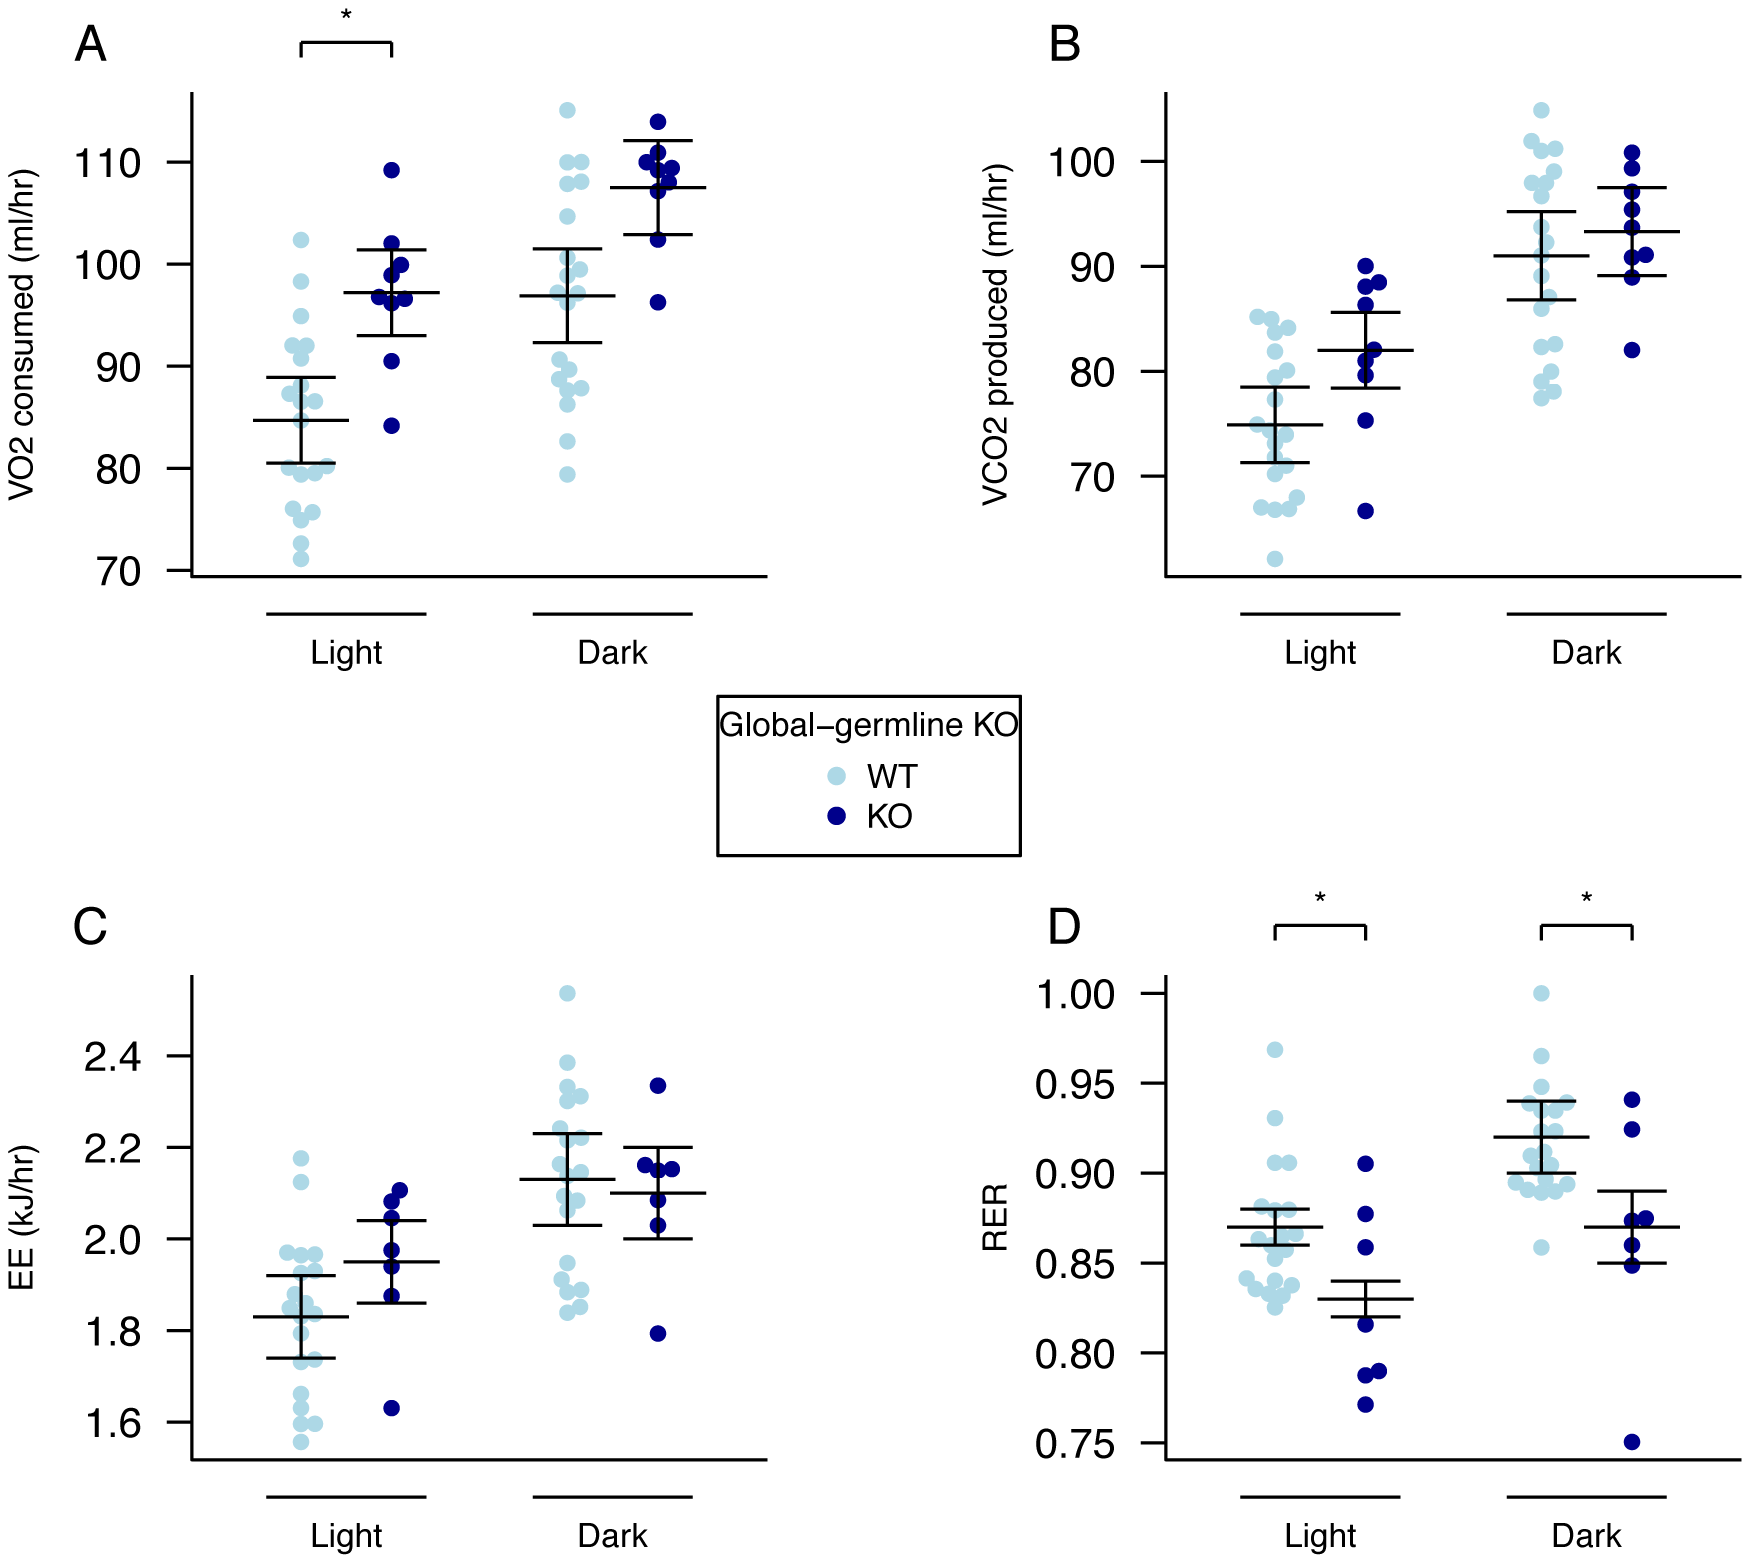 Energy expenditure and metabolism in male global germline <i>Fto</i> KO mice.